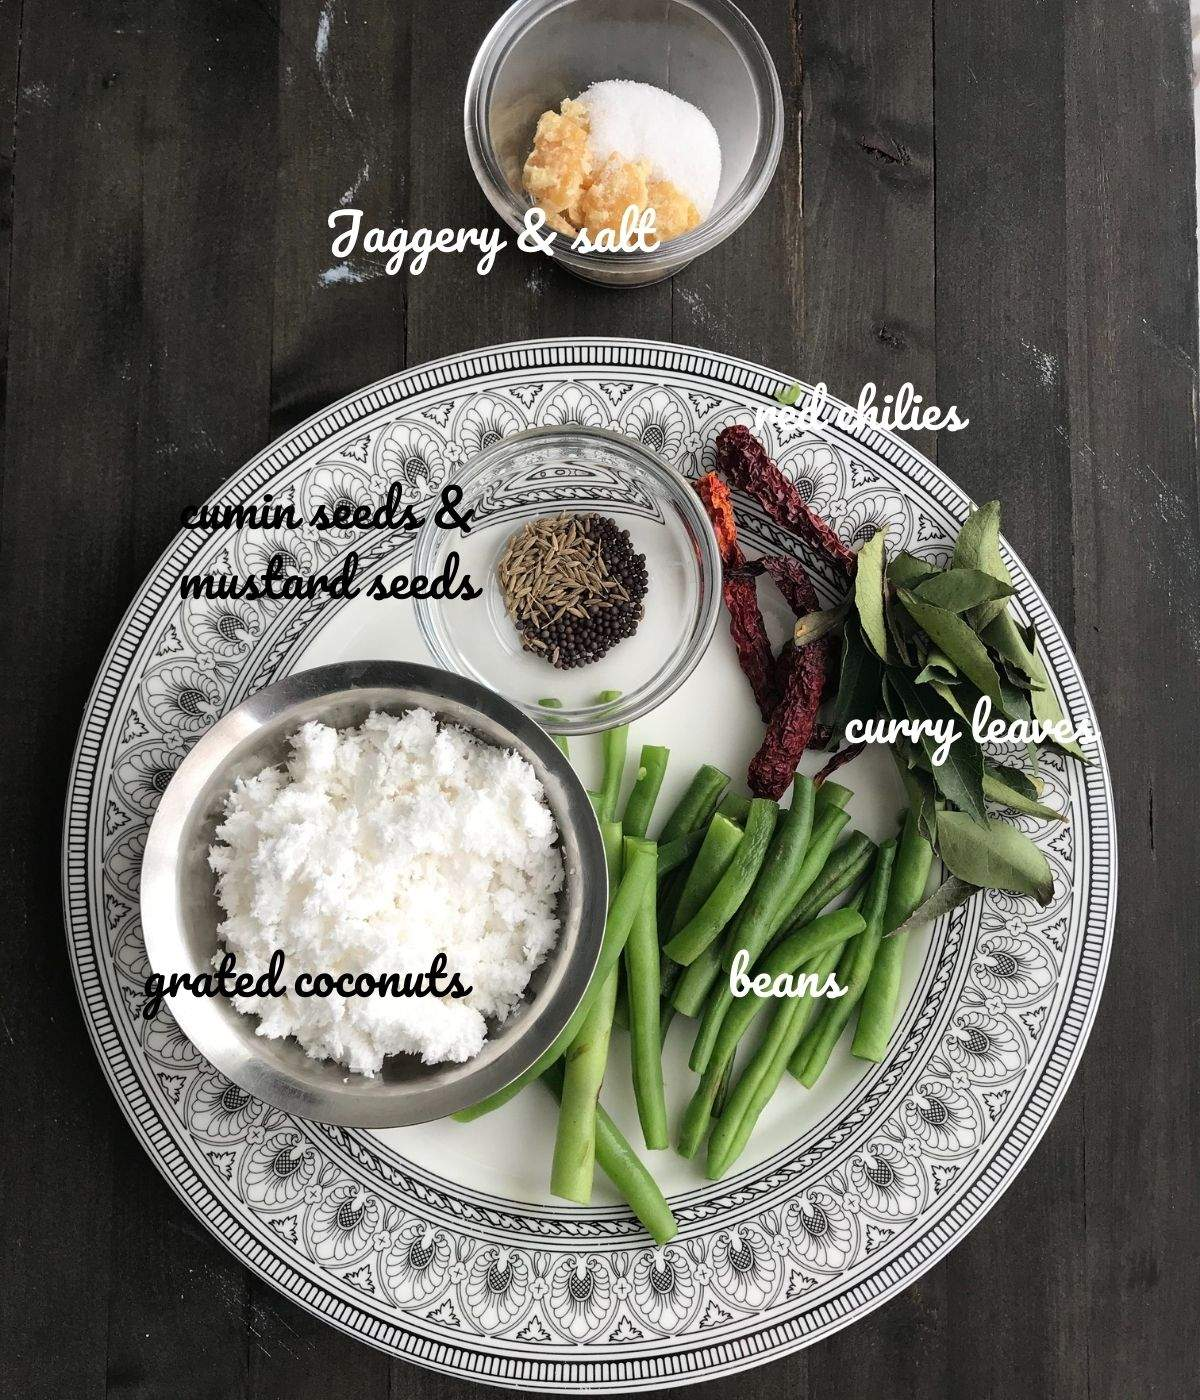 A plate is with beans stir fry ingredients like coconuts, spices and chili